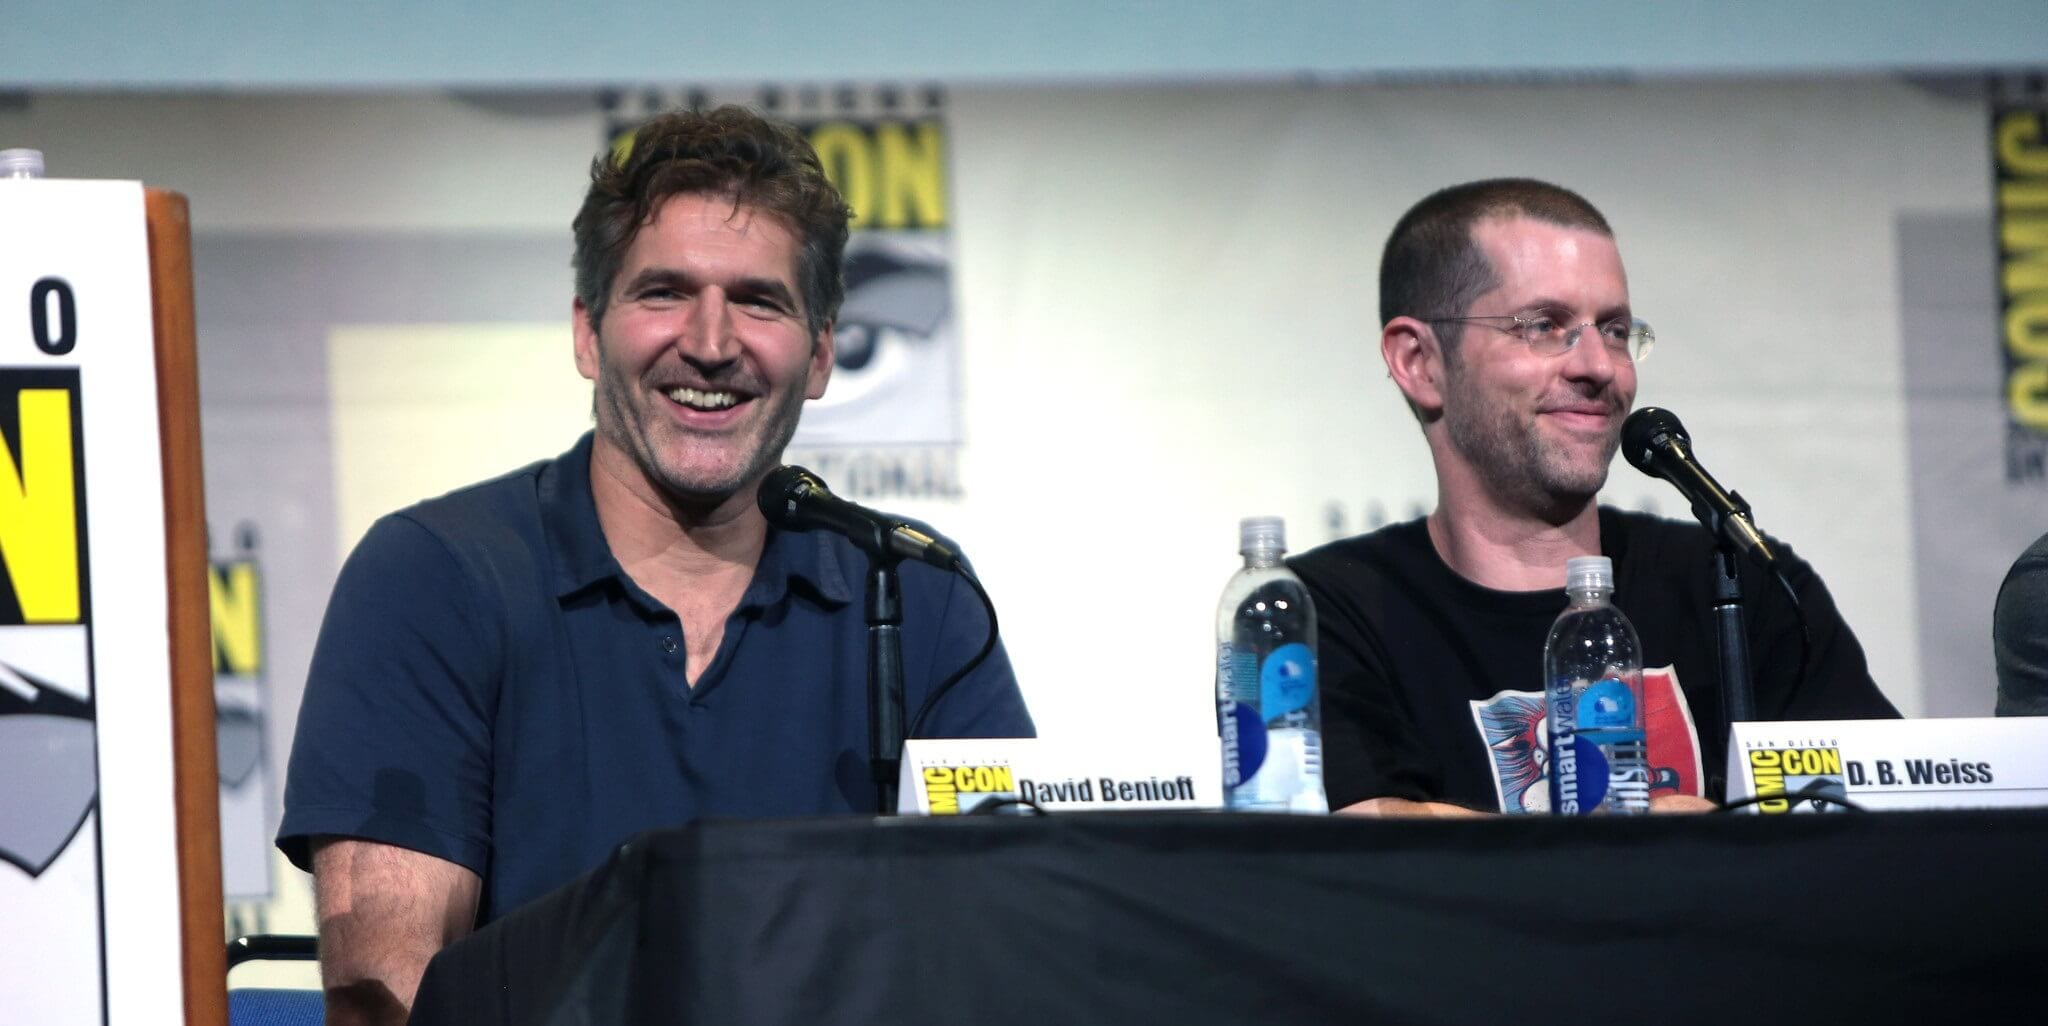 David Benioff and D.B. Weiss Leave Star Wars Trilogoy Featured